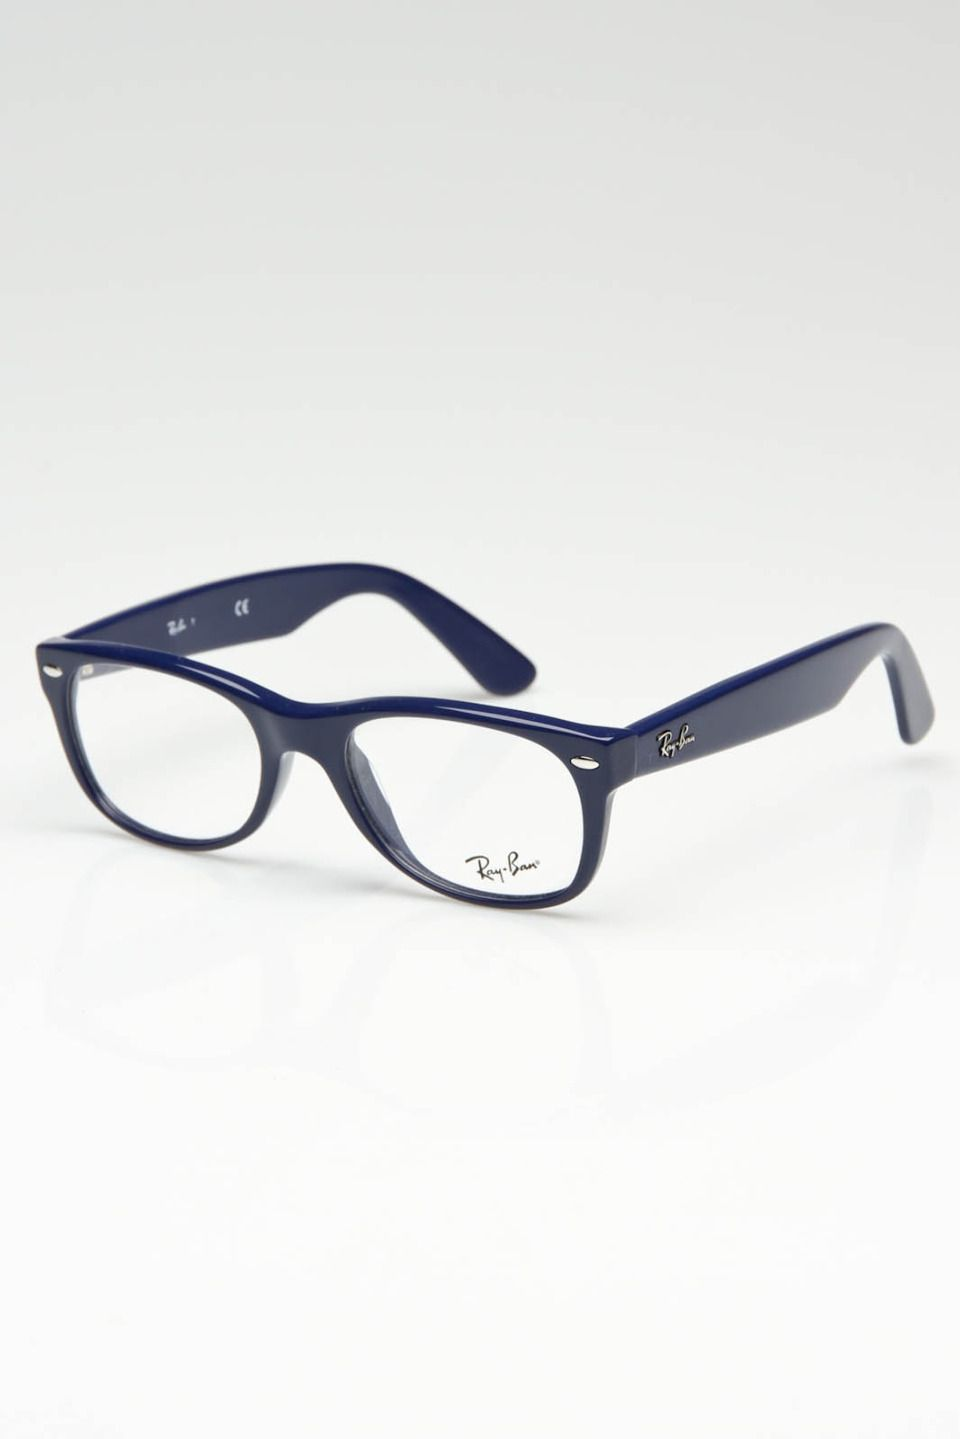 09dc76756fea Ray Ban Phoenix Eyeglasses In Cobalt. I have these in black.